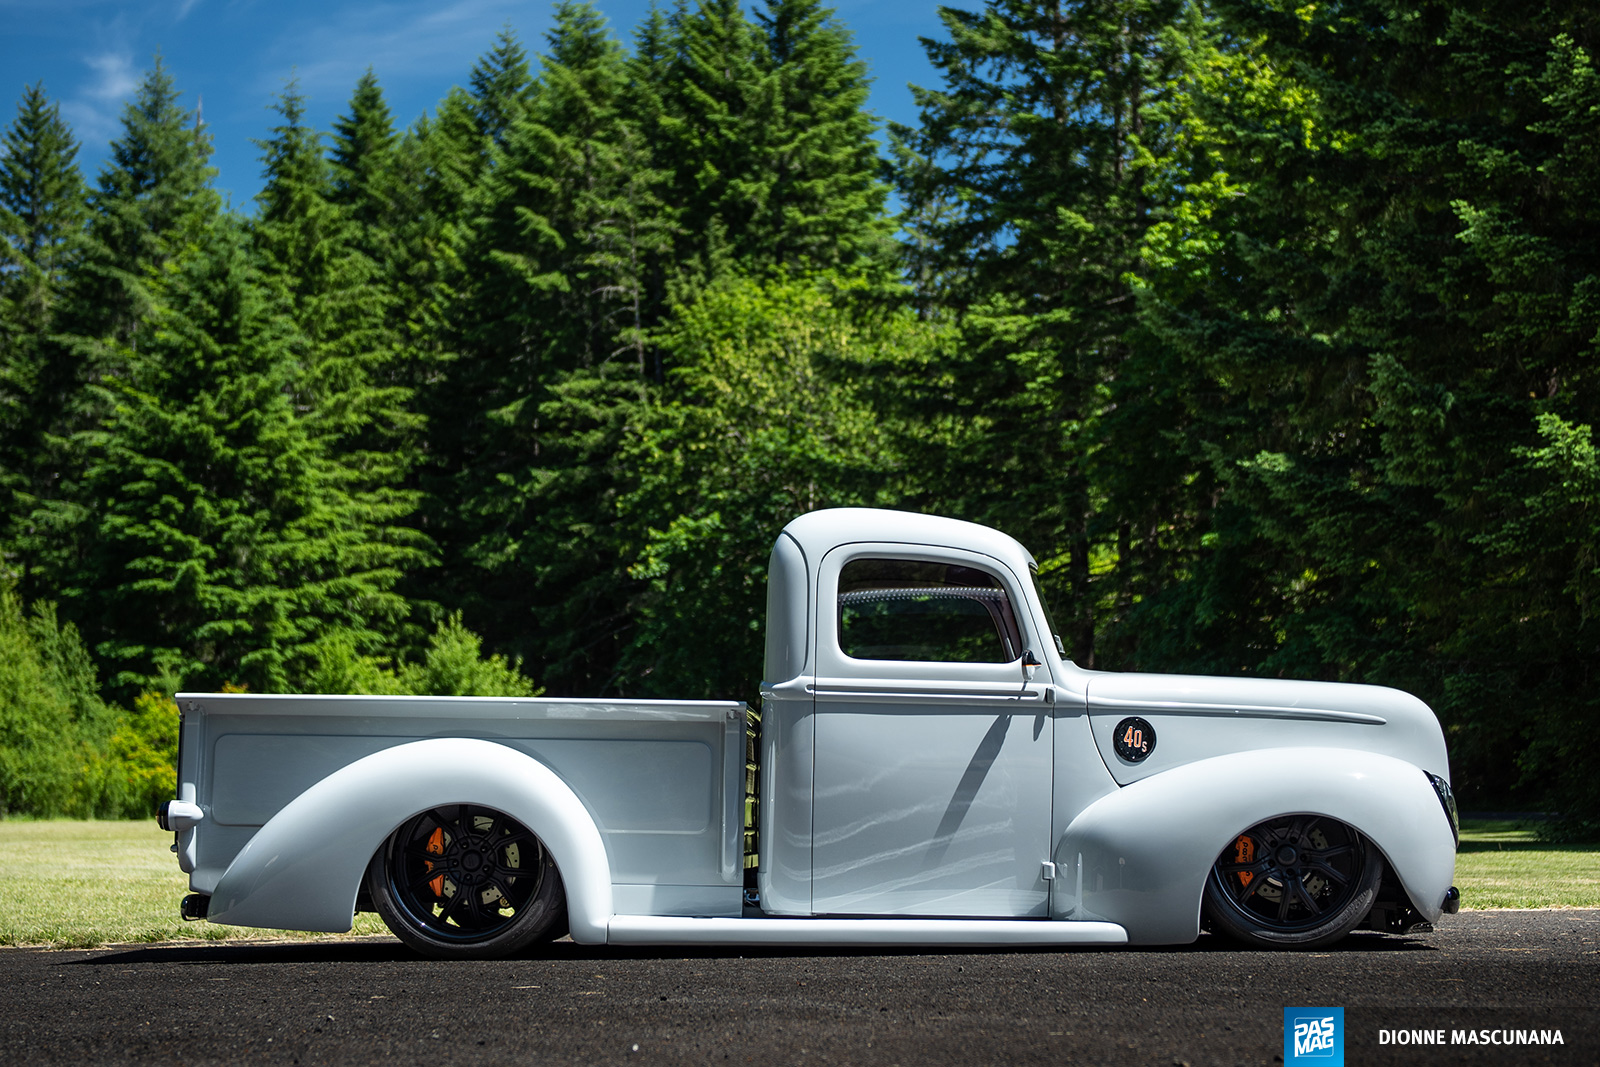 30 Chris Church 1940 Ford Pickup Toyo pasmag